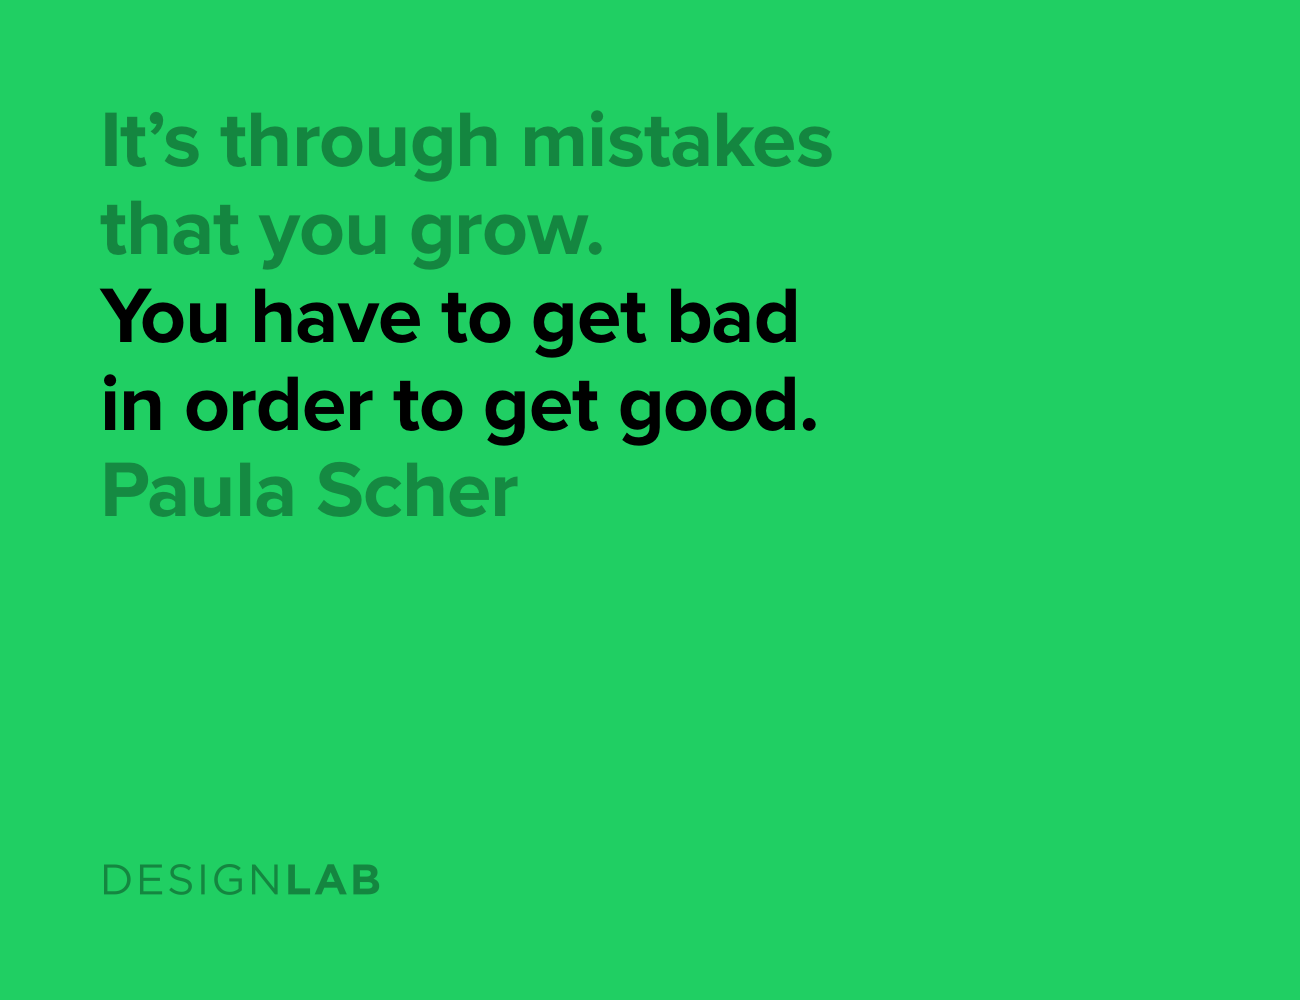 It's through mistakes that you grow. You have to get bad in order to get good. Paula Scher